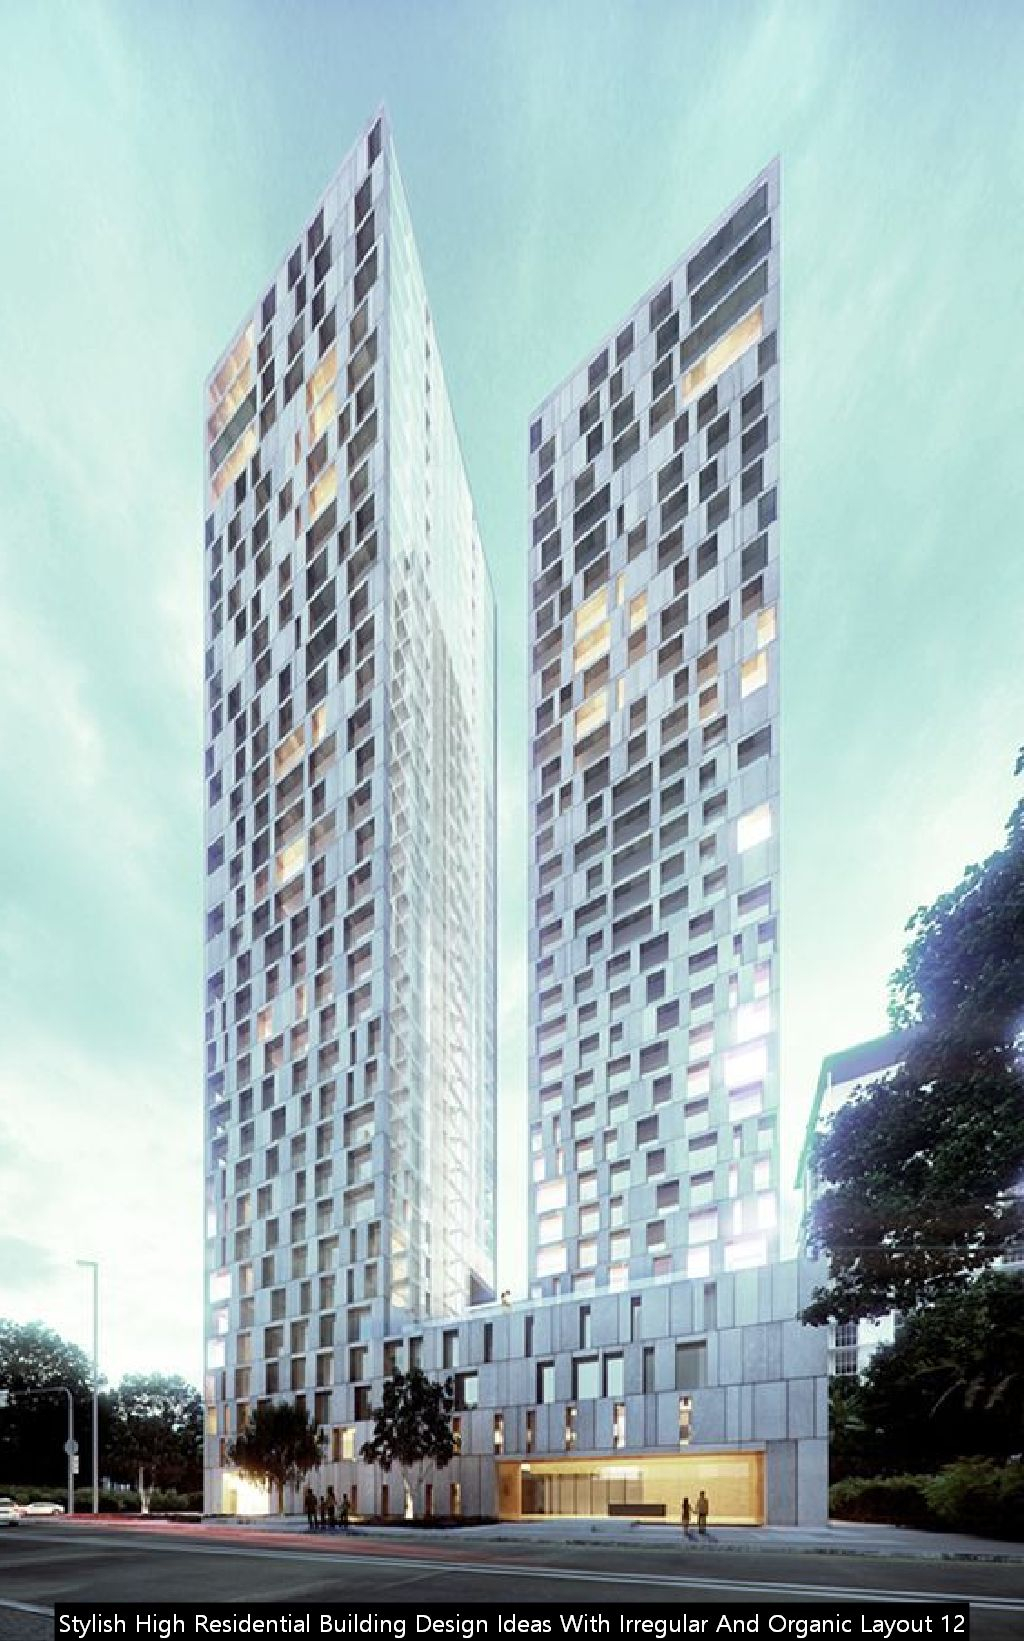 Stylish High Residential Building Design Ideas With Irregular And Organic Layout 12